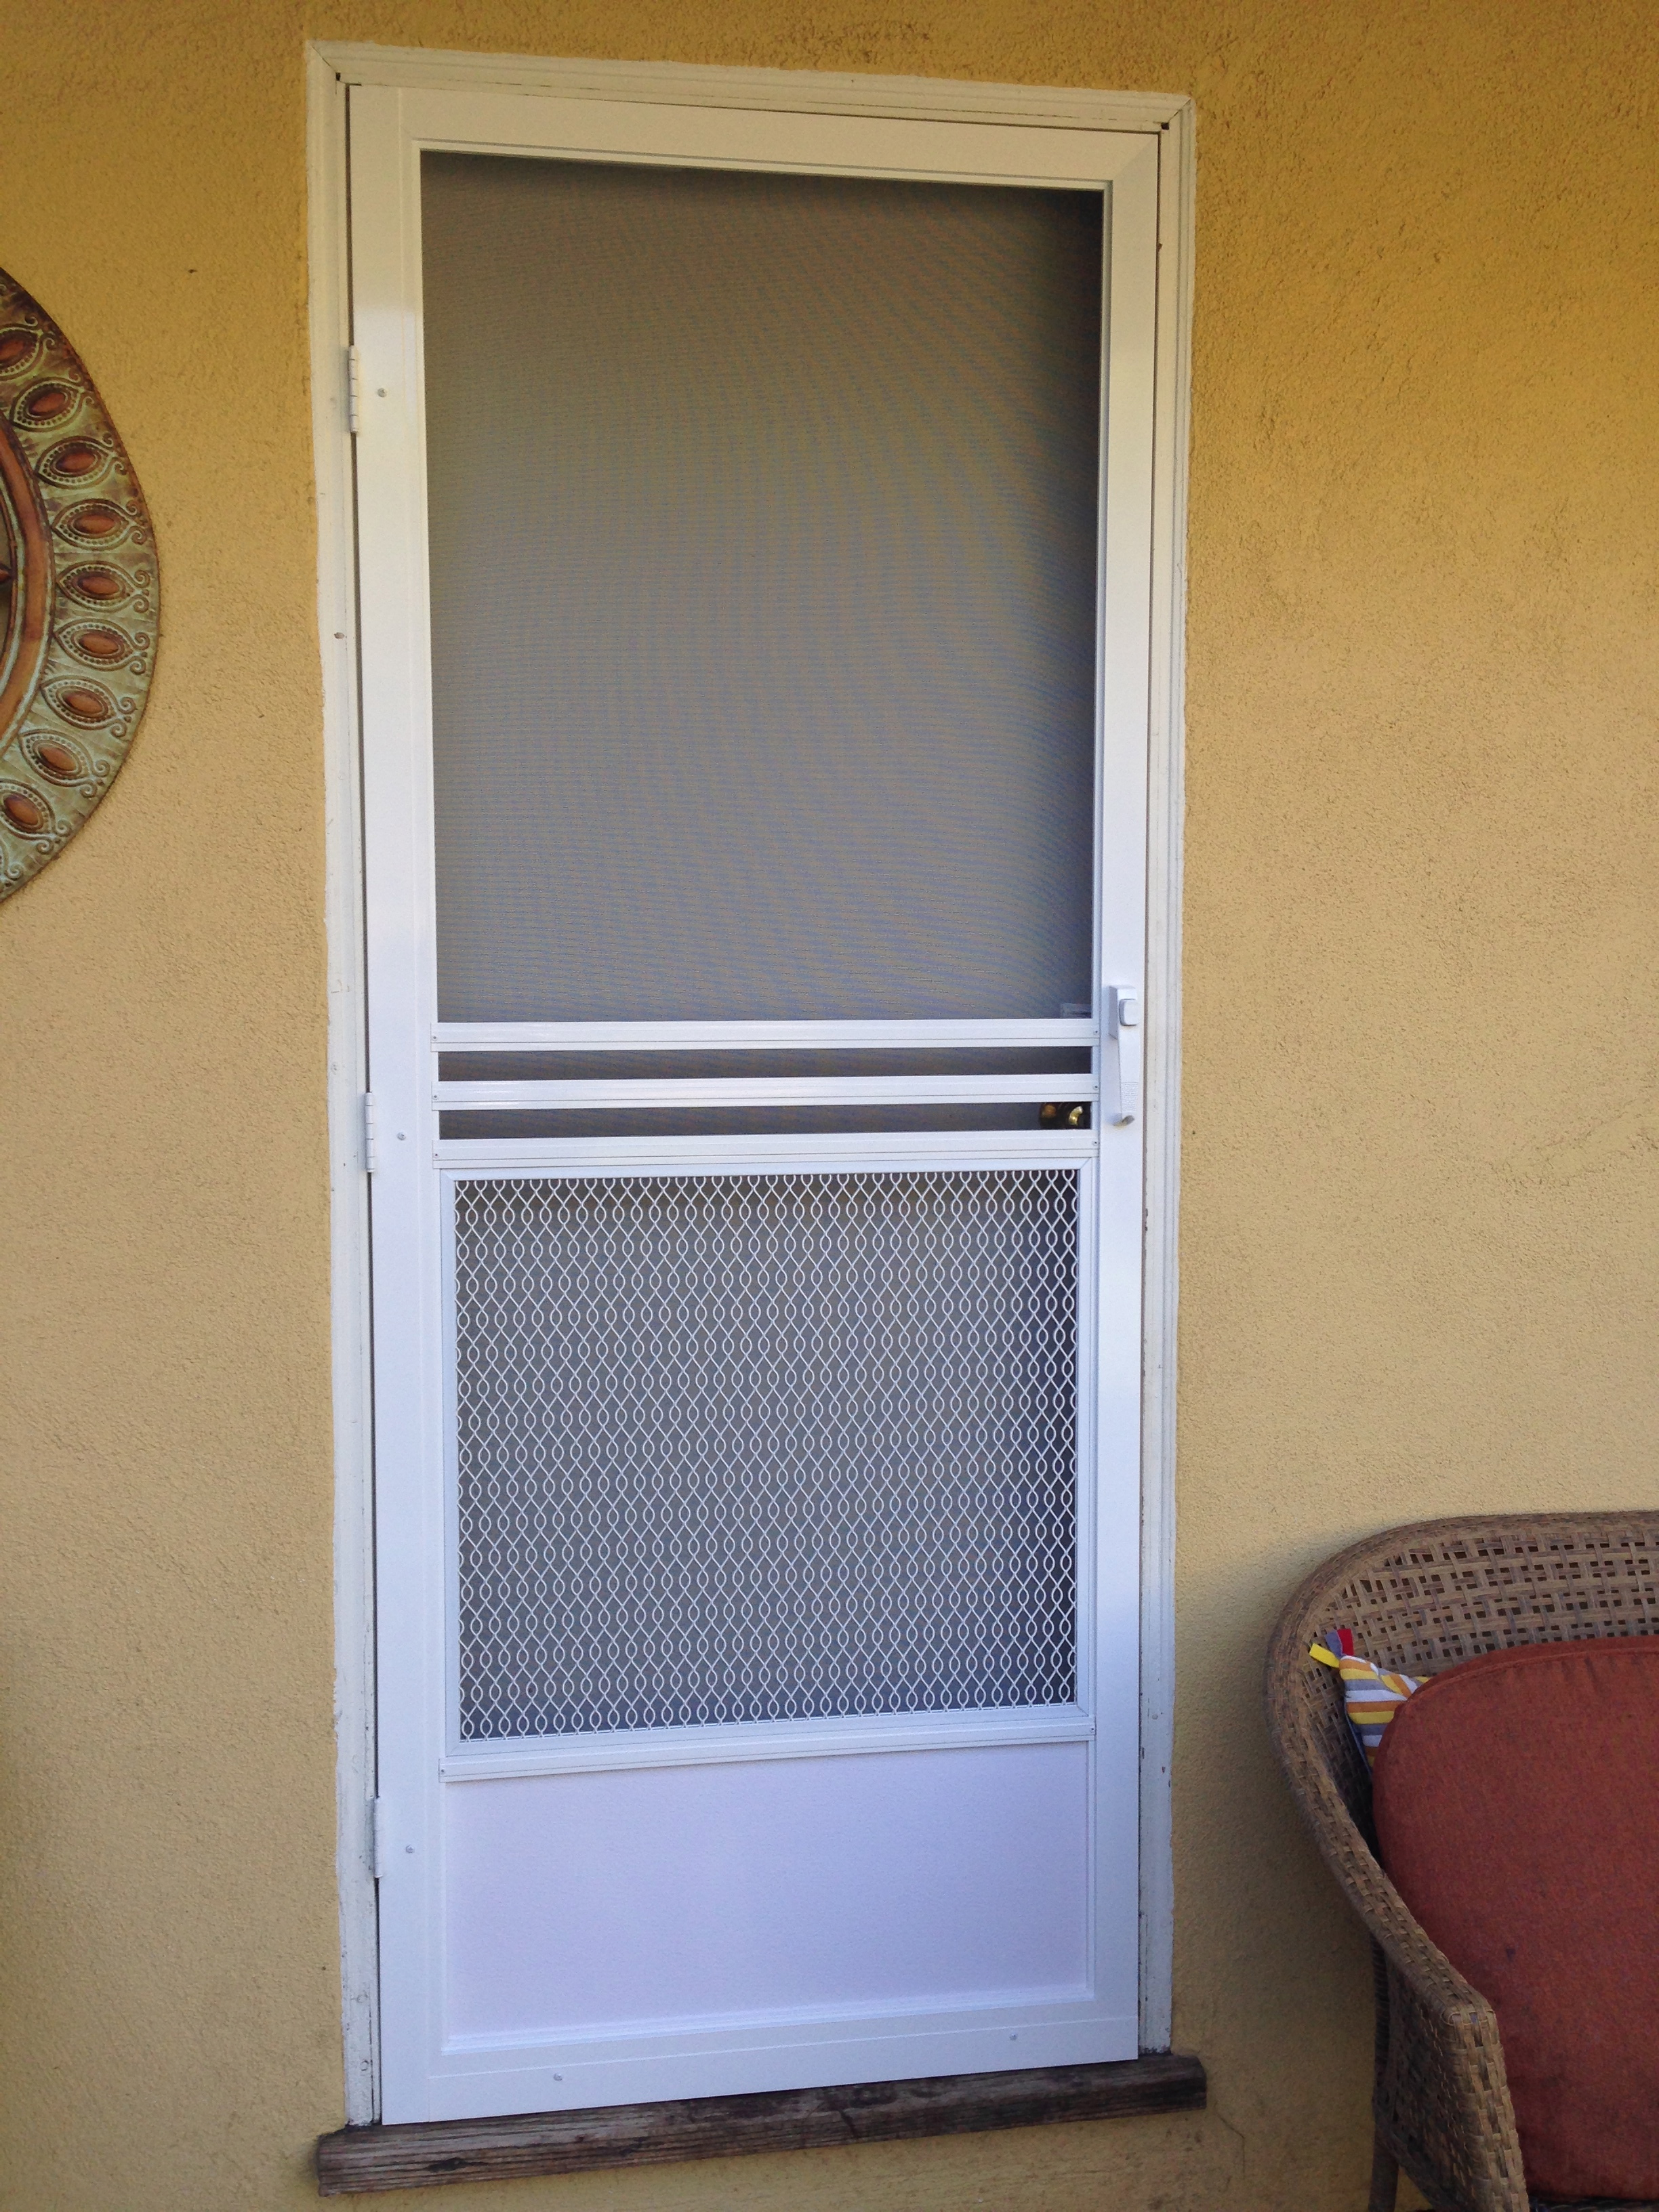 Screen doors simi valleyscreen door window screen repair for Screen new window